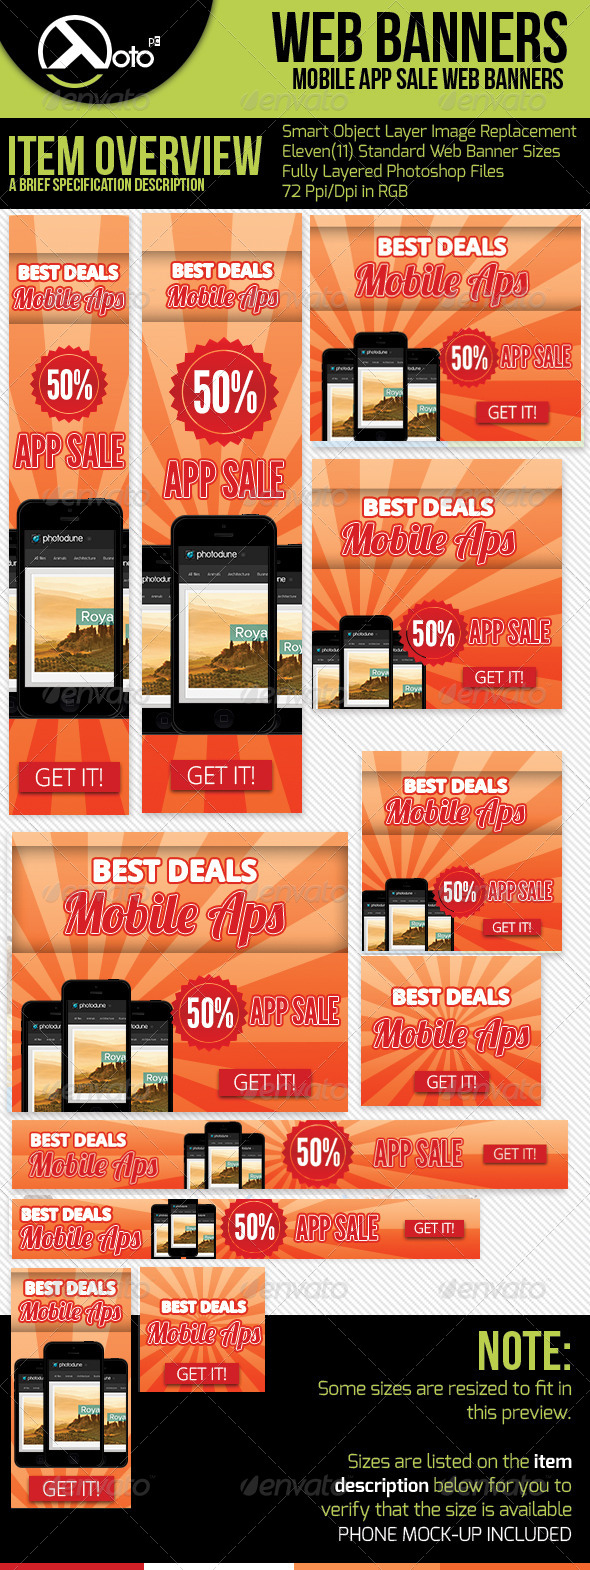 App Sale Web Banners with Phone Mock-up - Banners & Ads Web Elements